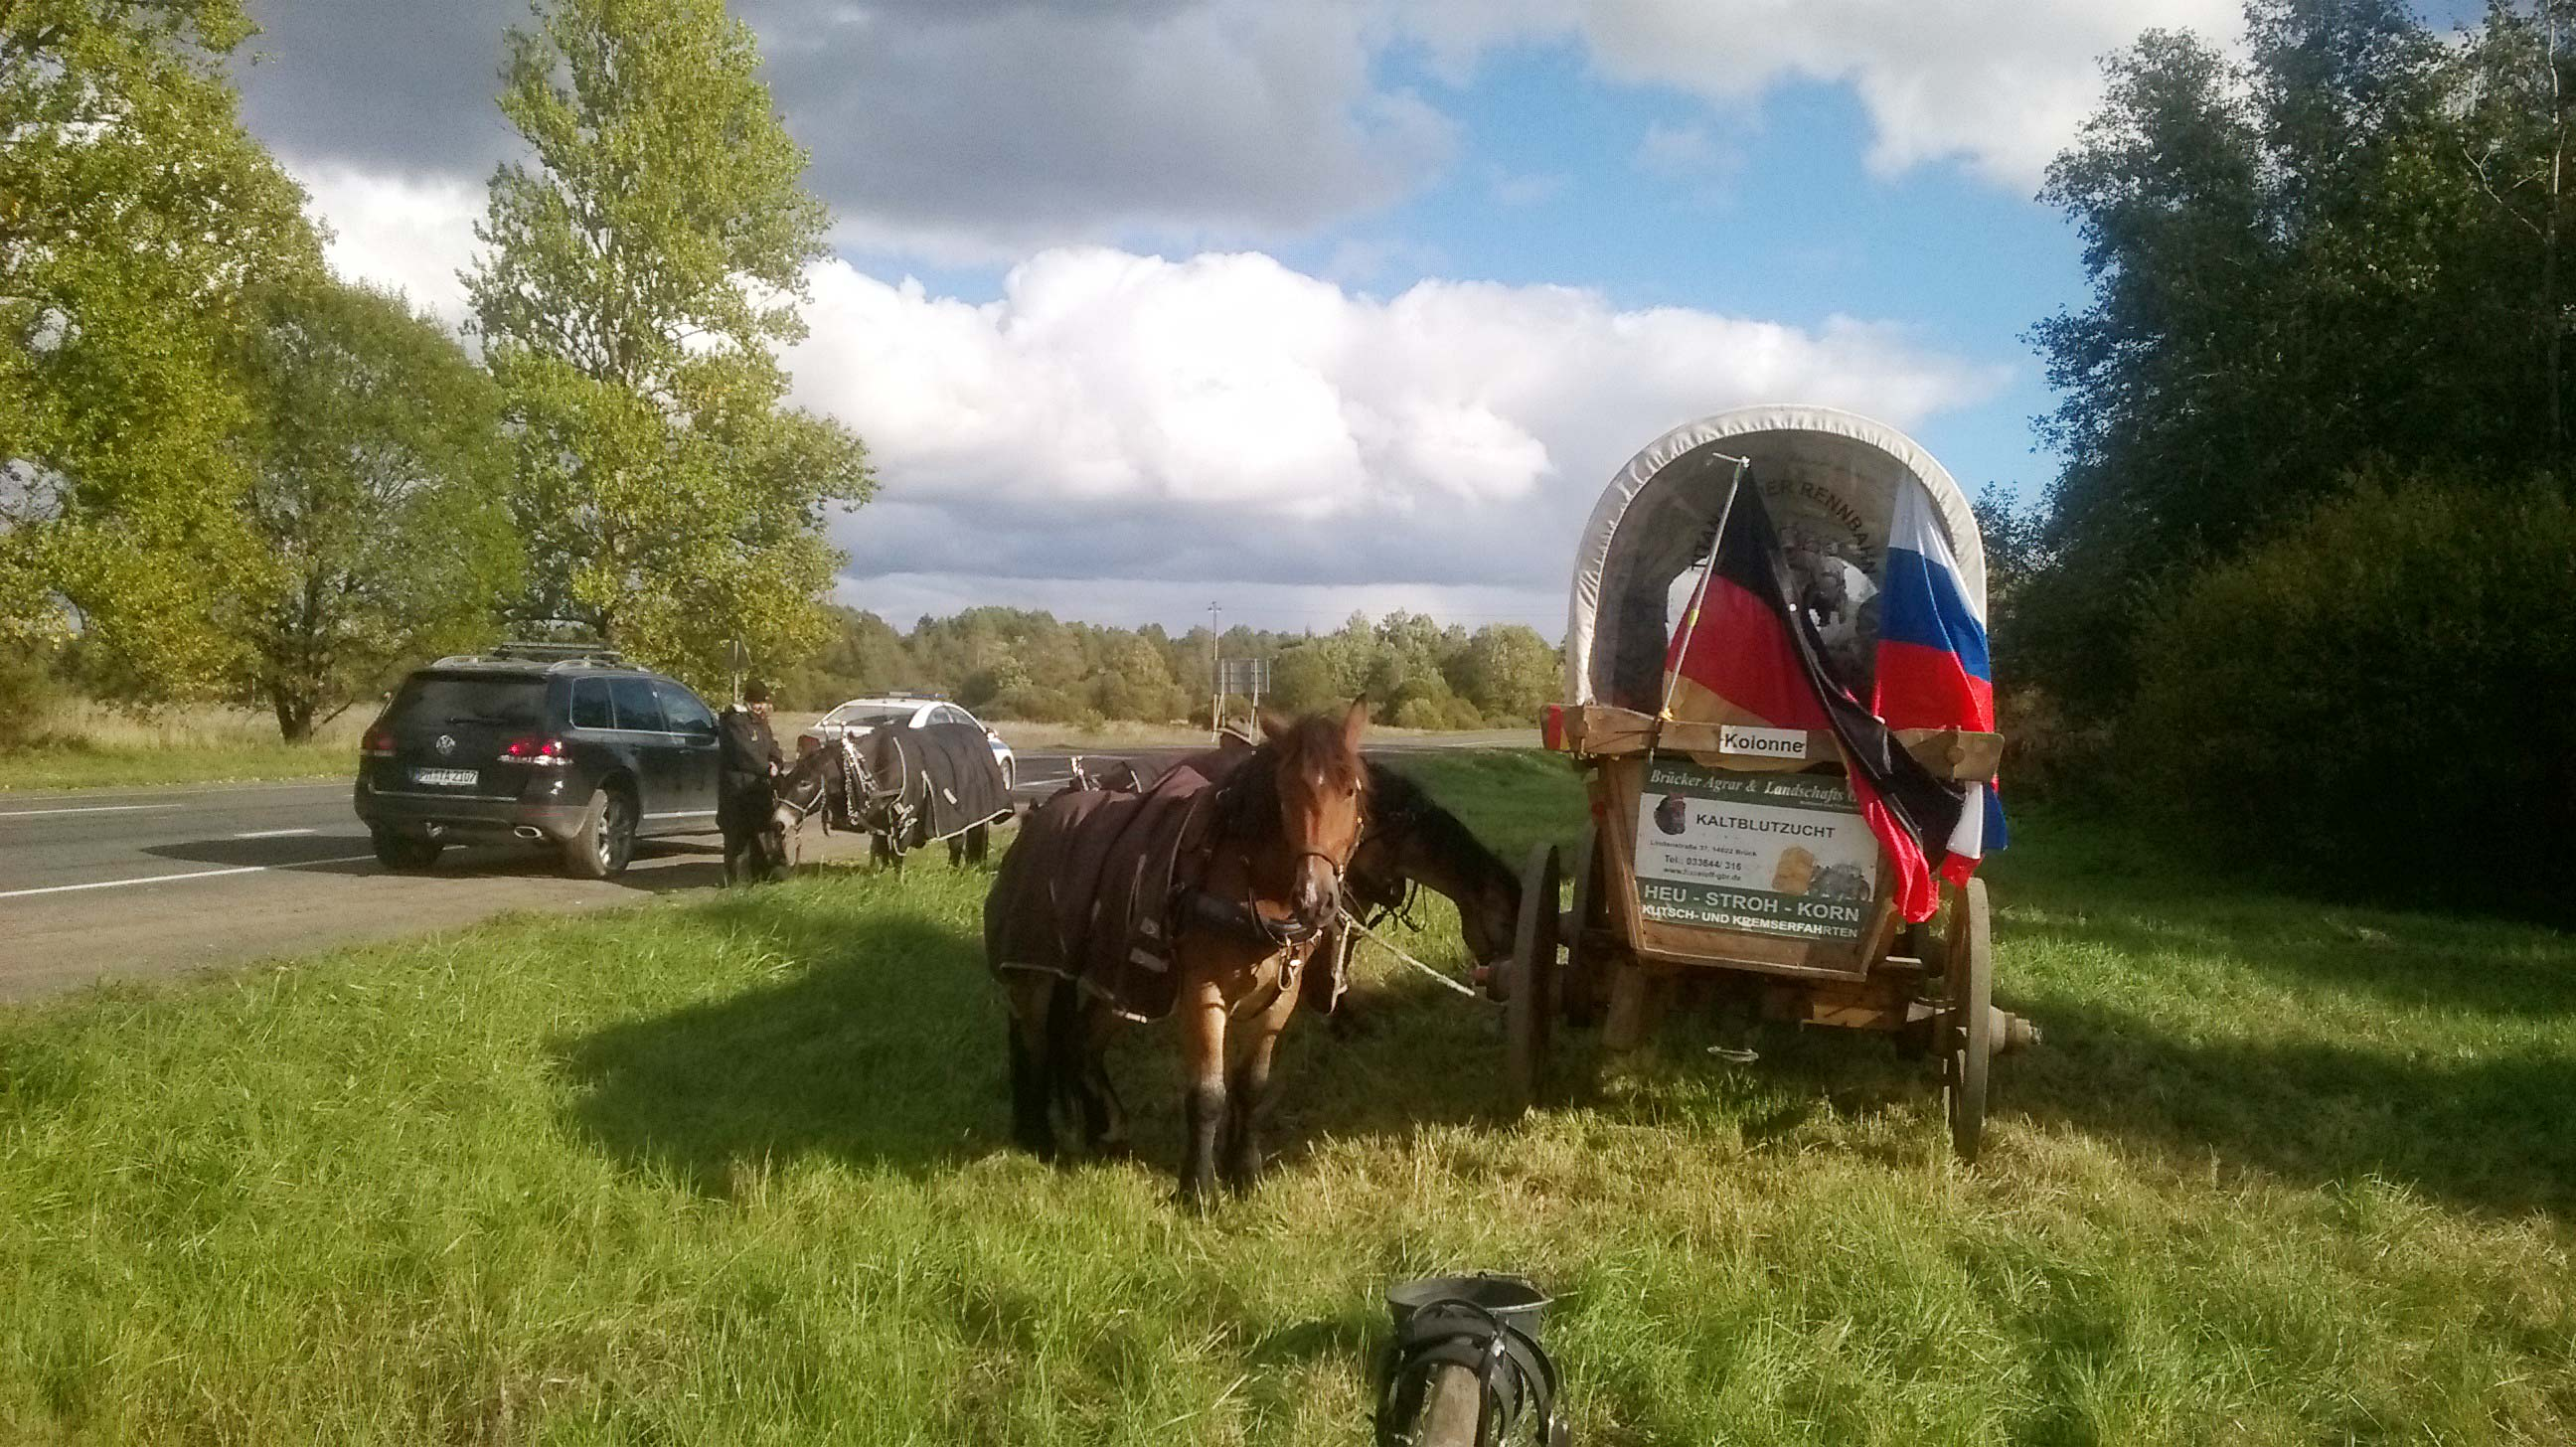 deutsche und russische fahne am Treck - Titanen on tour in Russland